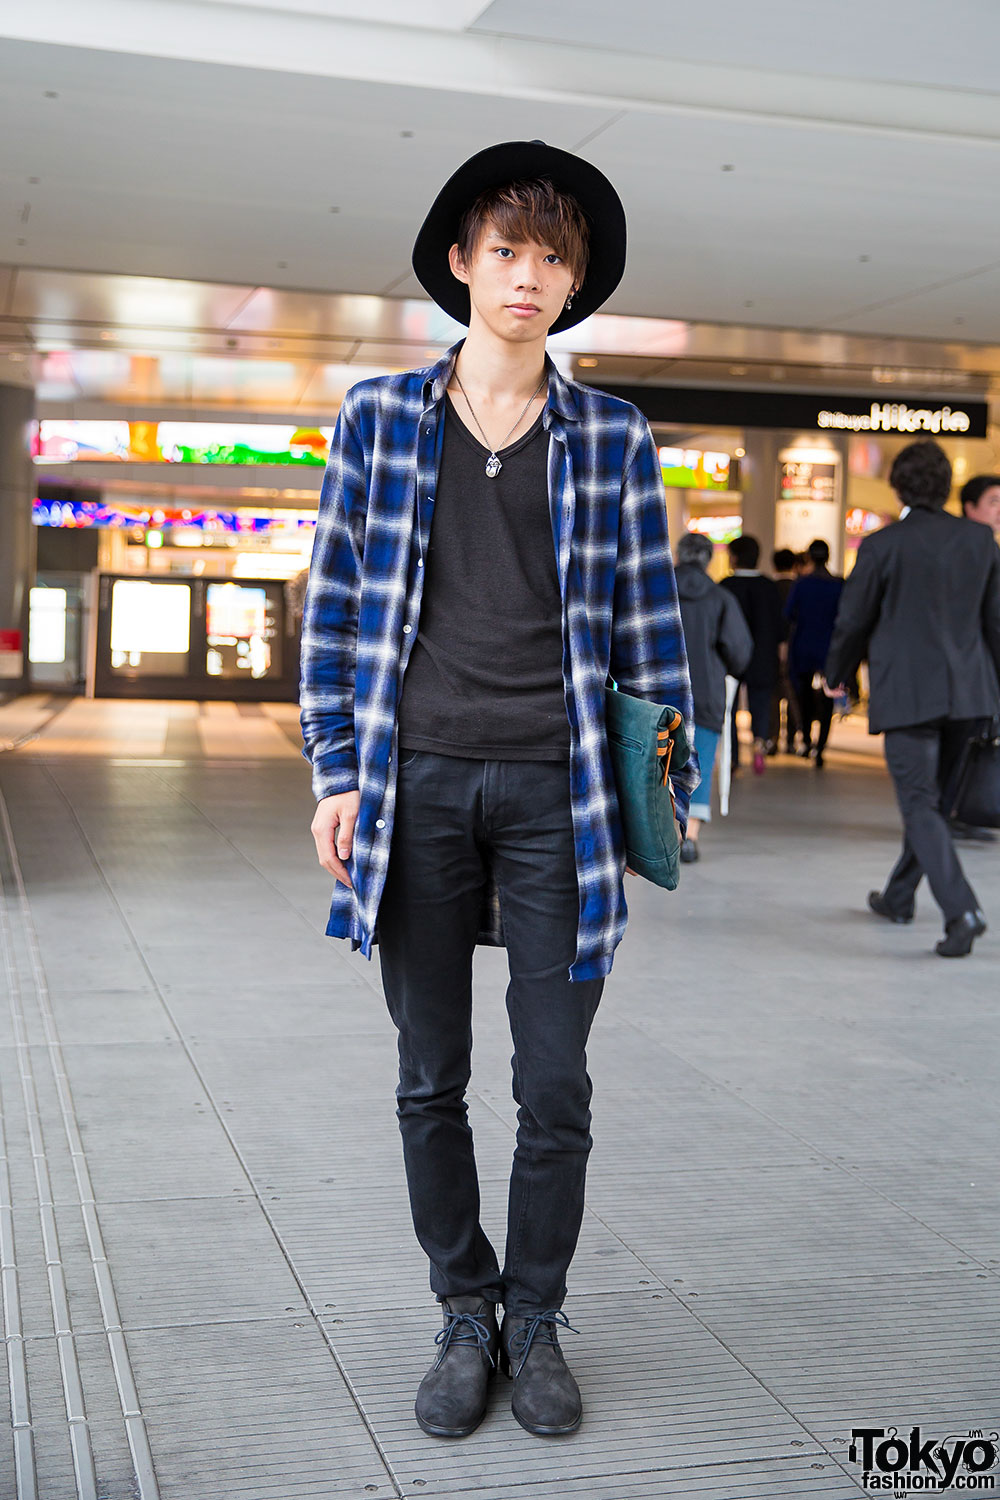 Tokyo, JAPAN About Blog MEN'S NON-NO is the male fashion magazine by Tokyo-based Shueisha. MEN'S NON-NO features an extensive array of menswear styles ranging from street, contemporary and high fashion, as well as more formal attires, making it appealing to a .